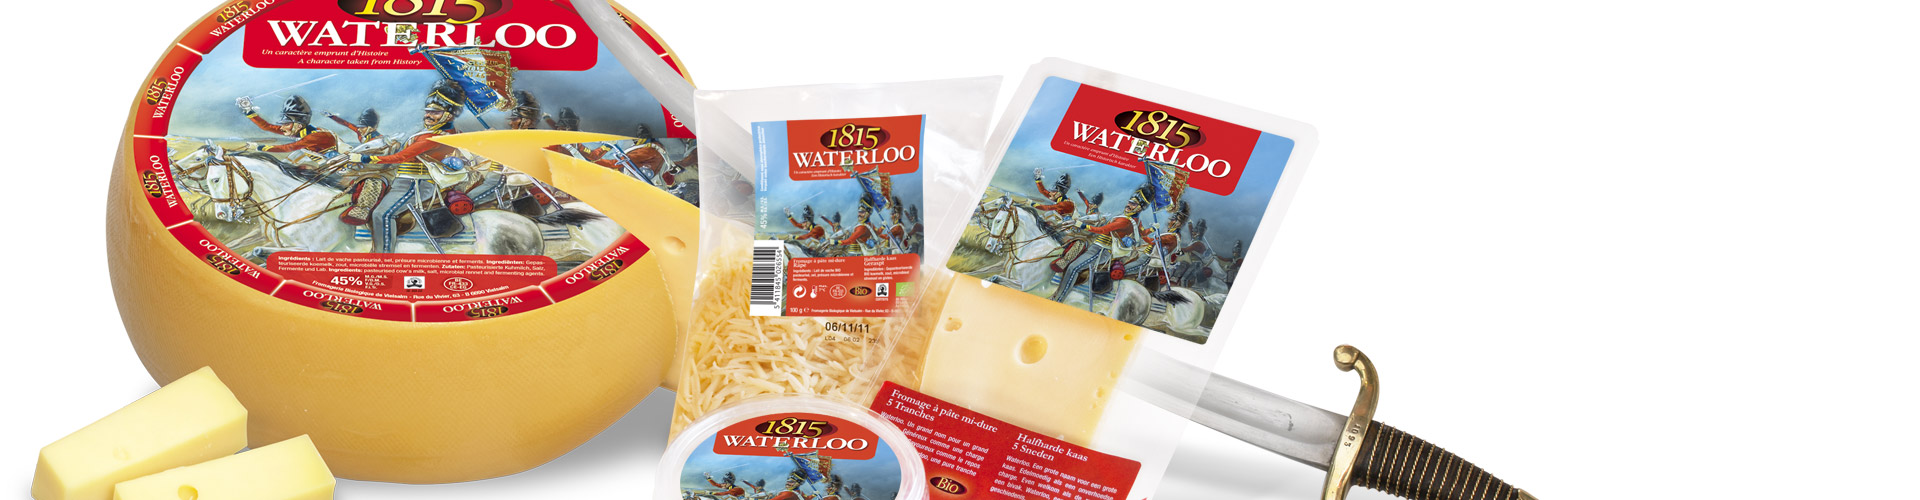 banner Loicq waterloo 1815